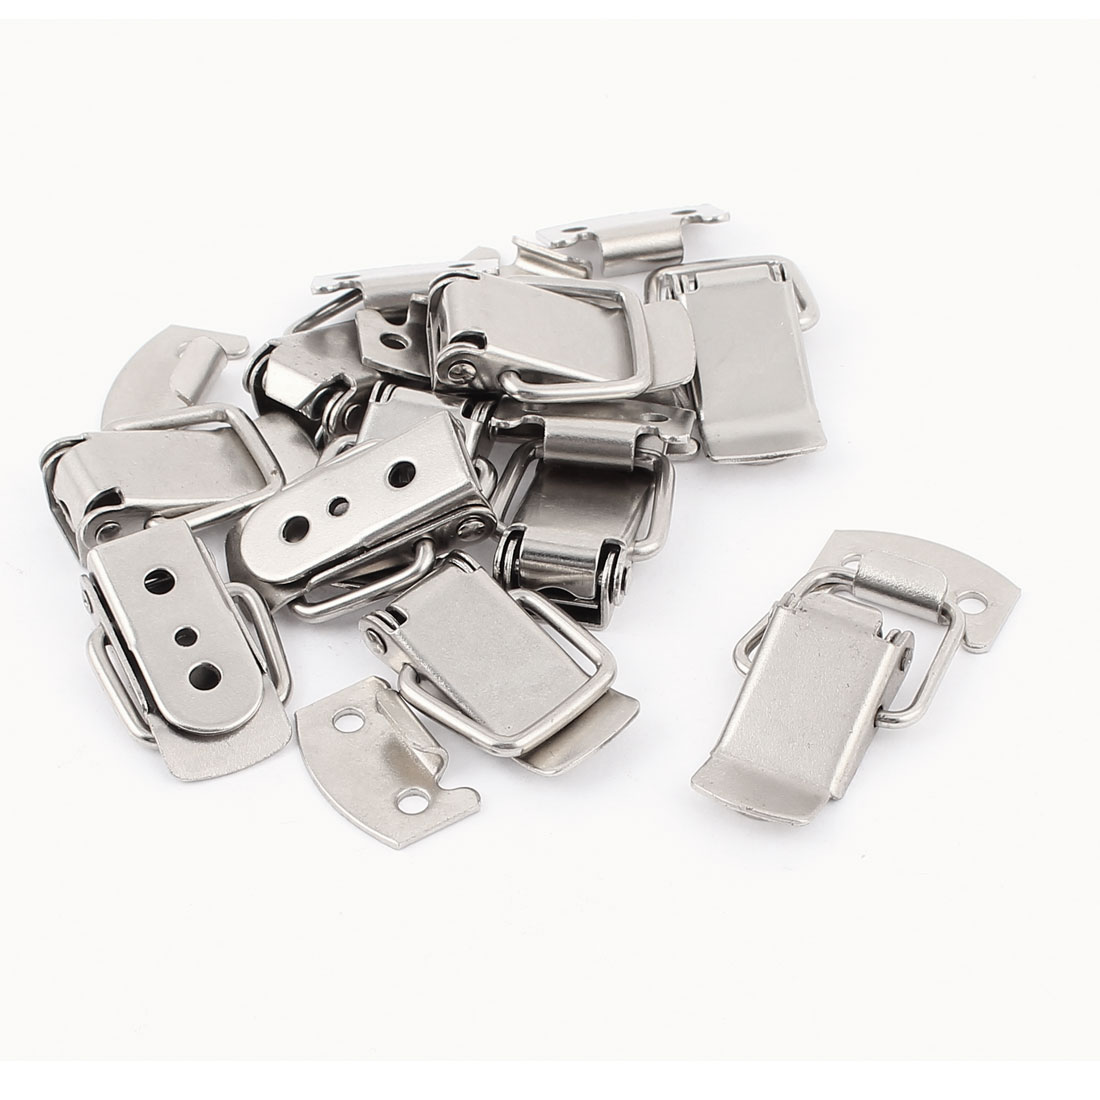 10 Pcs Suitcase Spring Loaded 38 x 20 x 8mm Metal Draw Loop Latch Silver Tone